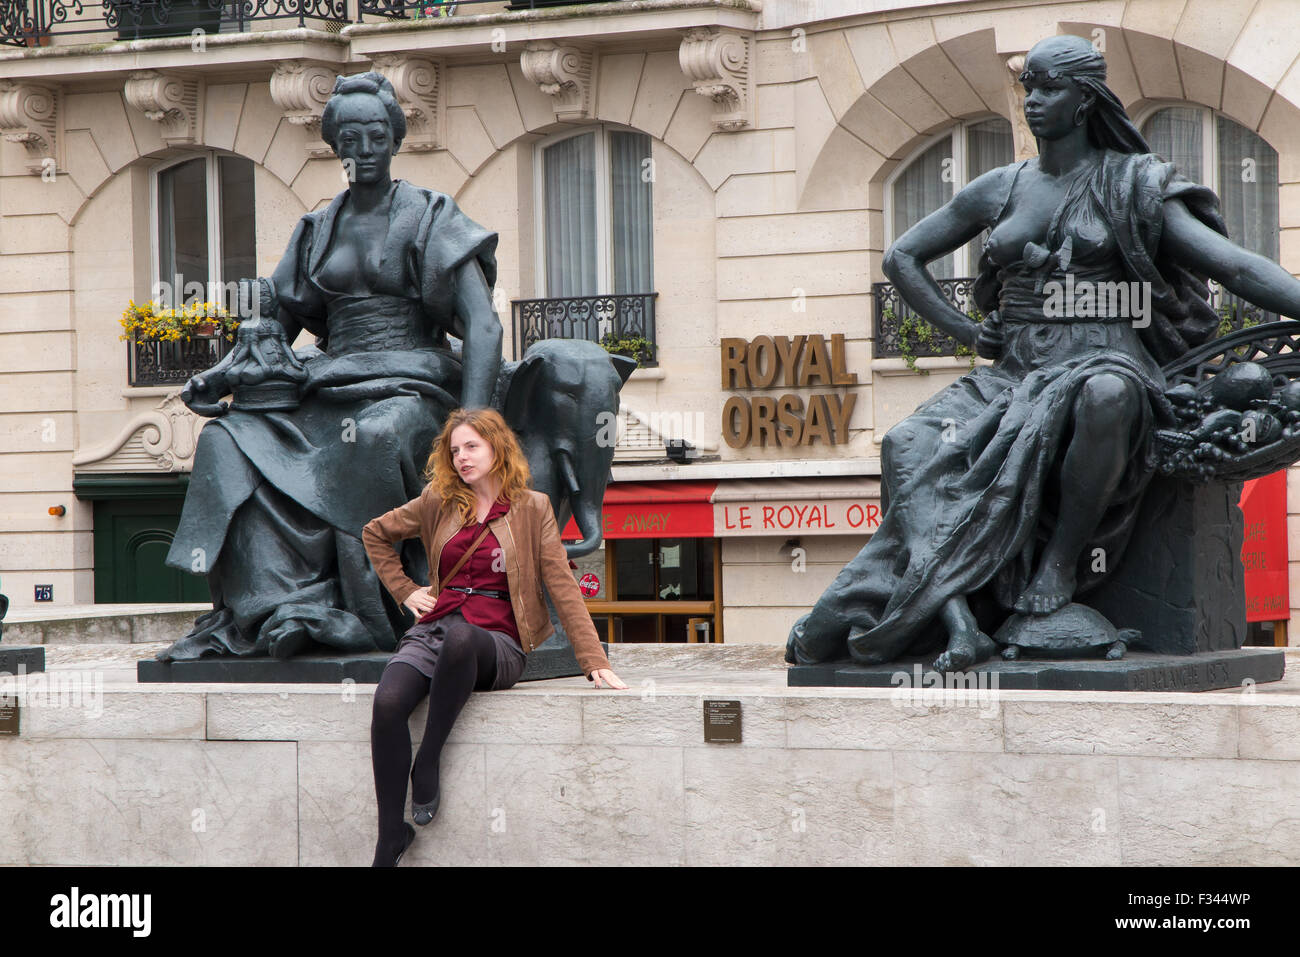 outside the Musee d'Orsay, Paris, France - Stock Image